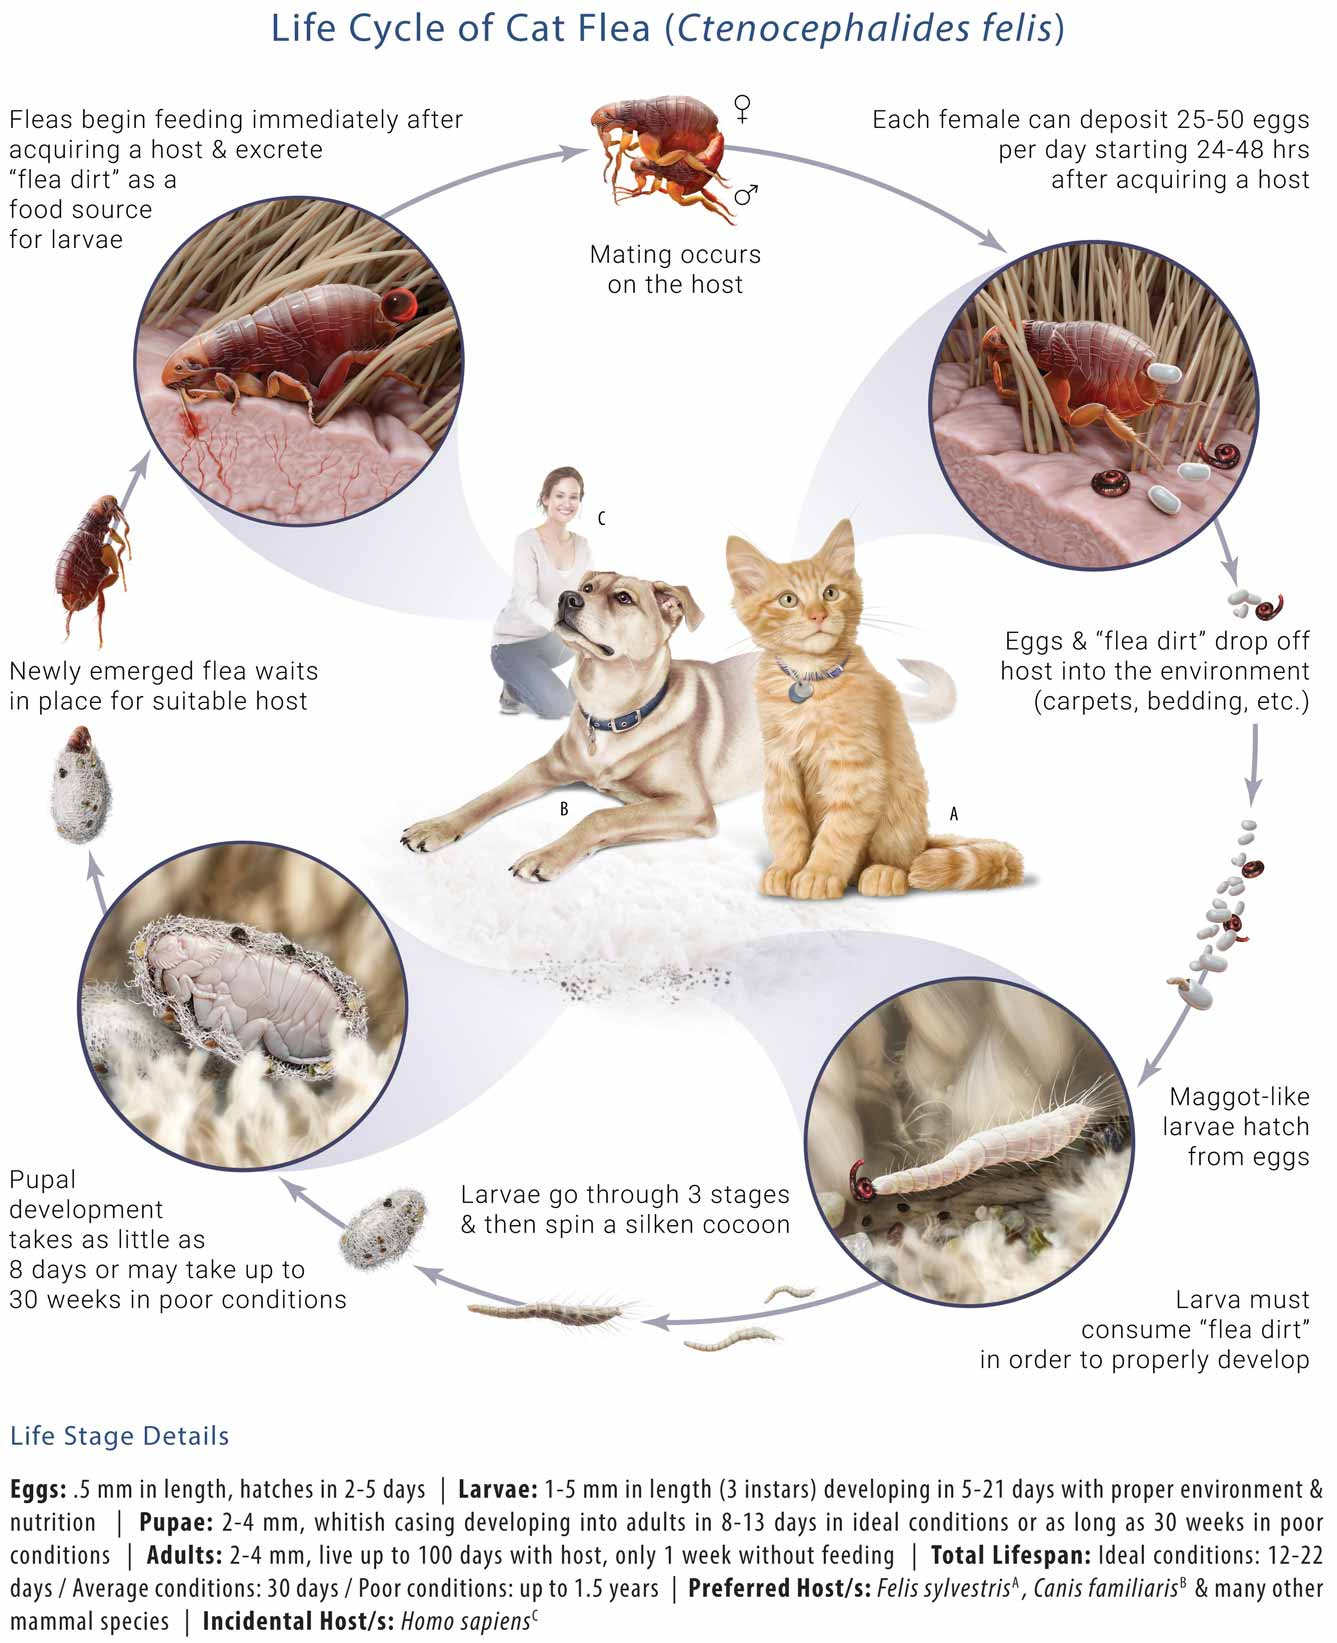 Life Cycle of a Cat Flea. Fleas begin feeding immediately after acquiring a host and excrete flea dirt as a food source for larvae. Mating occurs on the host. Each female can deposite 25-50 eggs per day starting 24 to 48 hours after acquiring a host. Eggs and flea dirt drop off host and into the environment (carpets, bedding, etc.). Maggot-like larvae hatch from eggs and must consume flea dirt in order to properly develop. The larvae go through 3 stages and then spin a silken cocoon. Pupal development takes as little as 8 days or may take up to 30 weeks in poor conditions. The newly emerged flea waits in place for a suitable host.